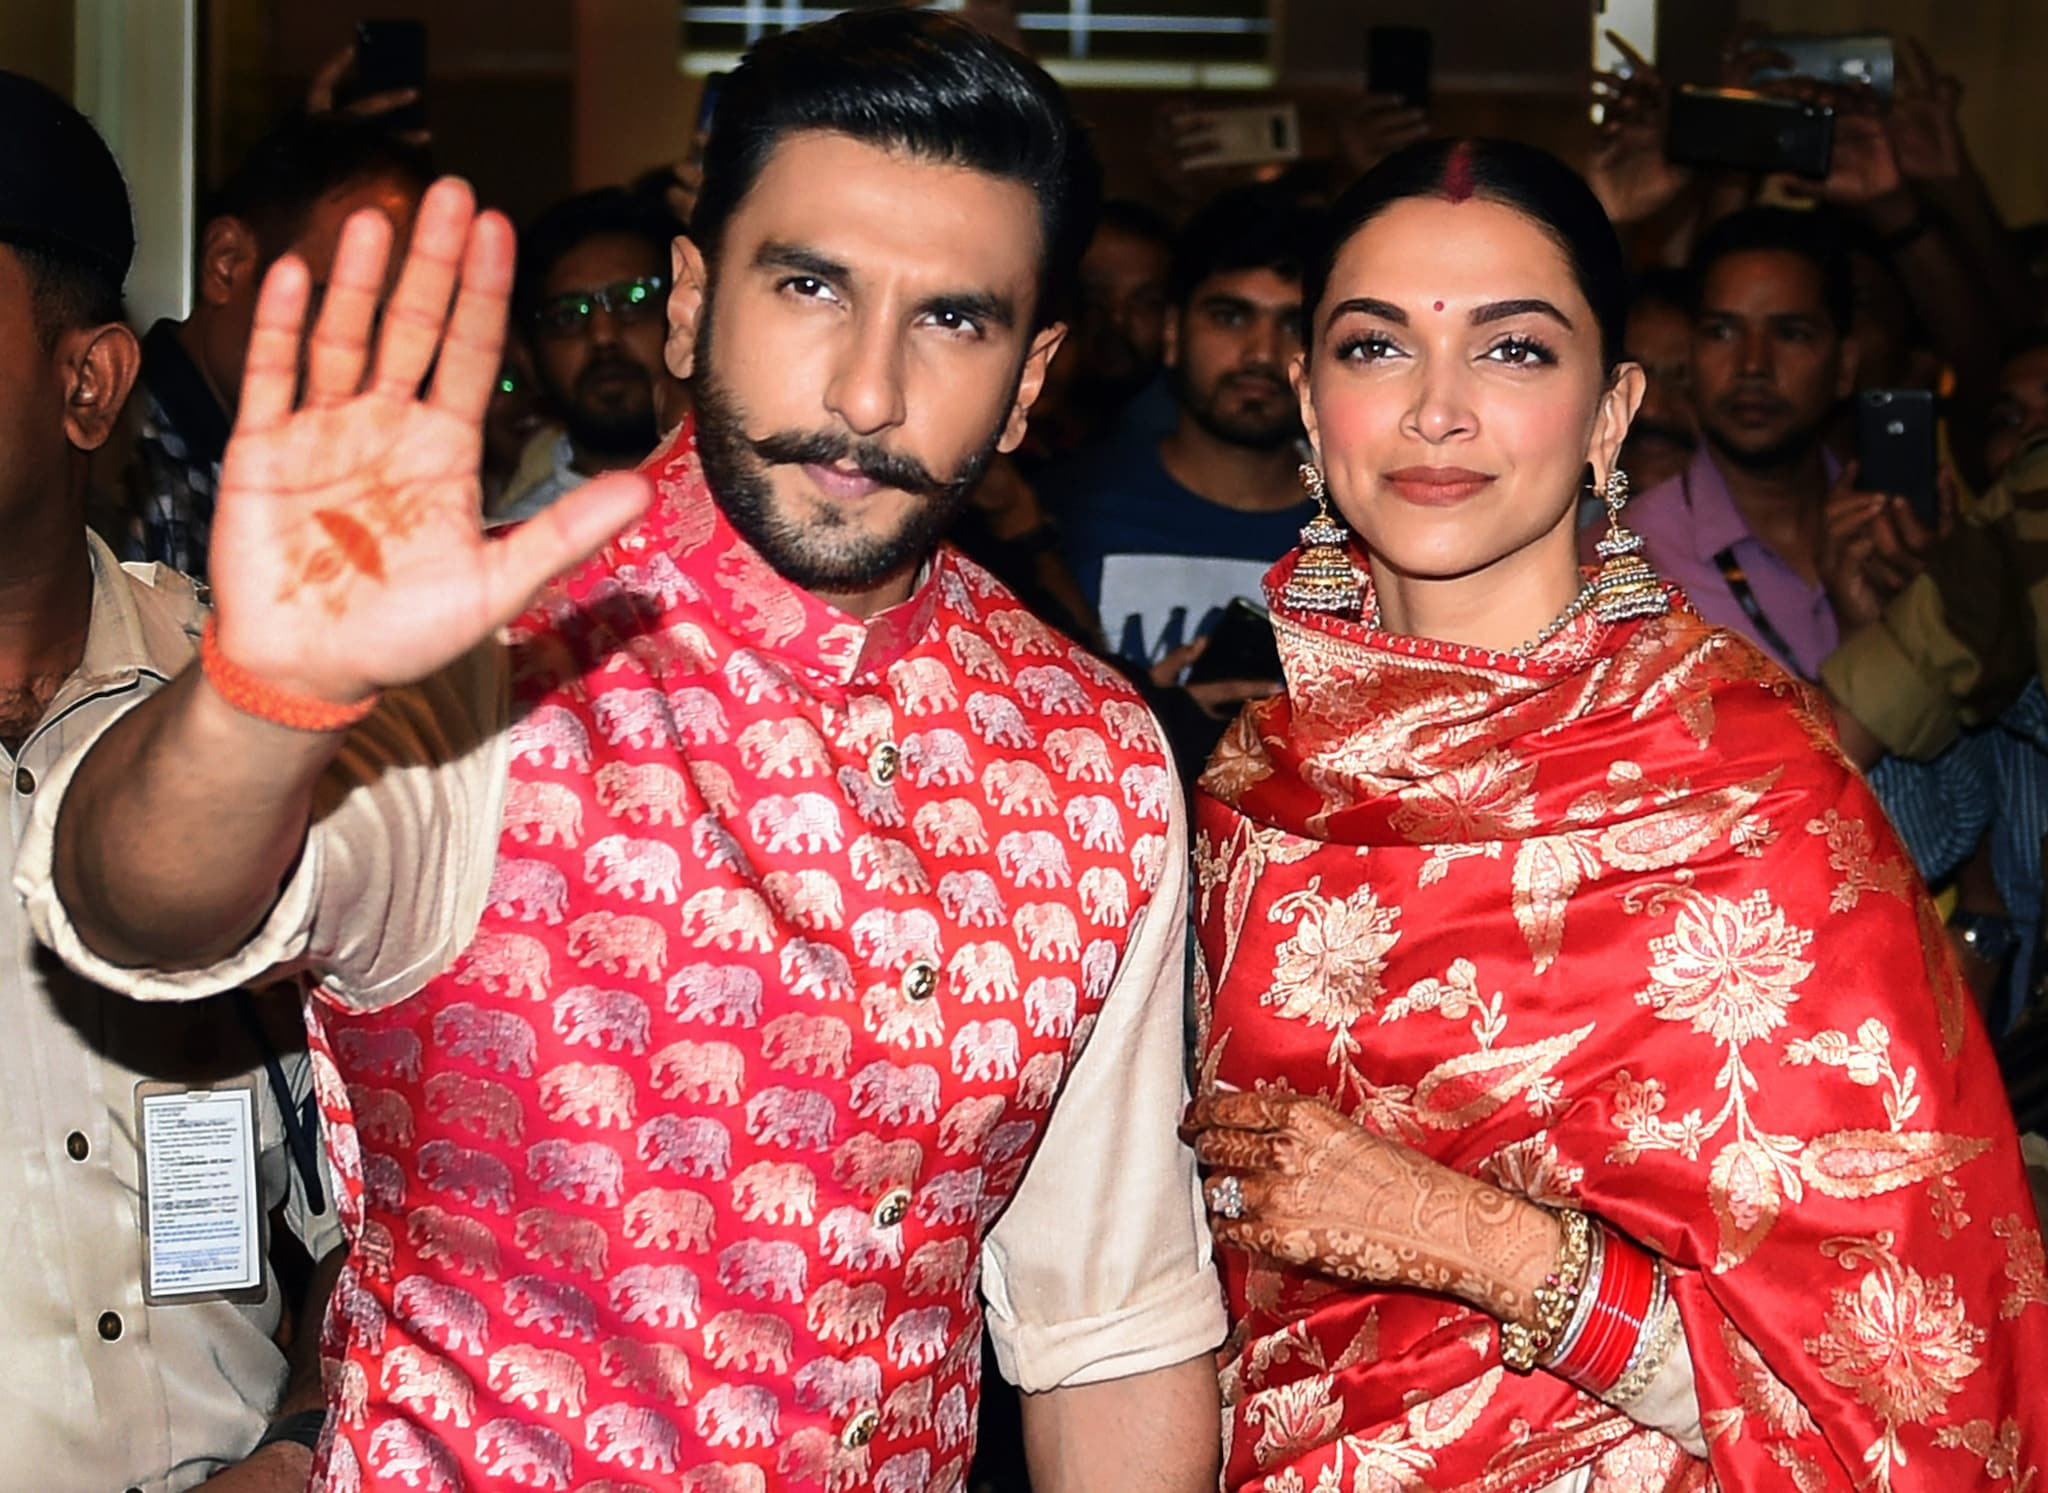 Mumbai: Newly-wed Bollywood stars Deepika Padukone and Ranveer Singh, who recently tied knot in a private ceremony at Lake Como in Italy, on their arrival in Mumbai, Sunday, November 18, 2018. (PTI Photo/Shashank Parade)  (PTI11_18_2018_000024B)